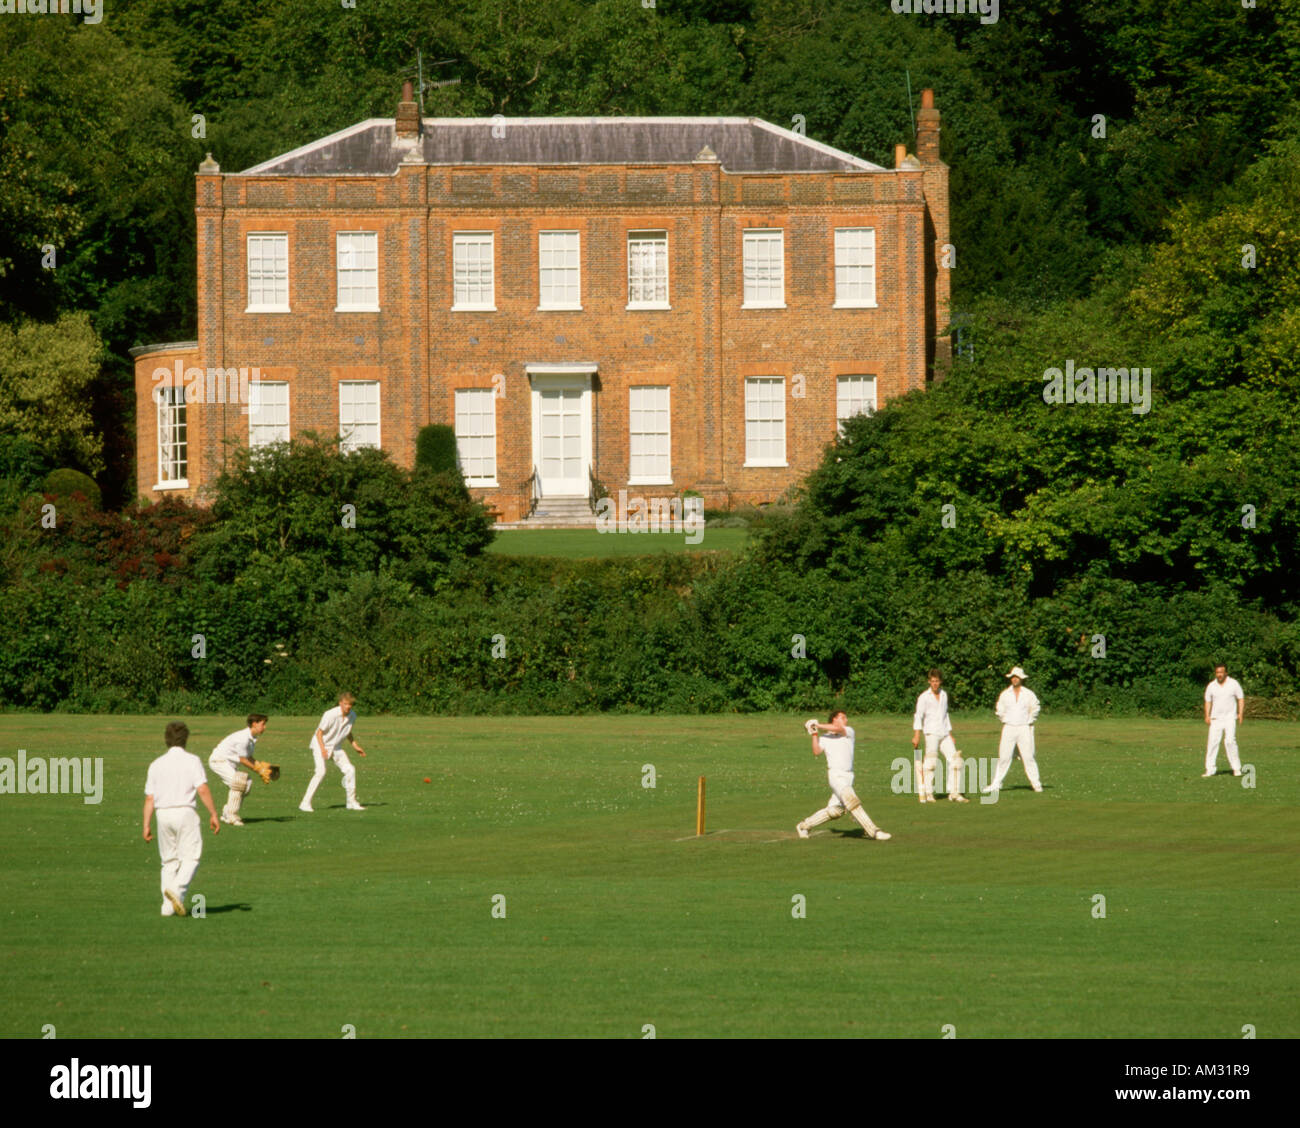 England. Buckinghamshire. Hambleden. Cricket match - Stock Image